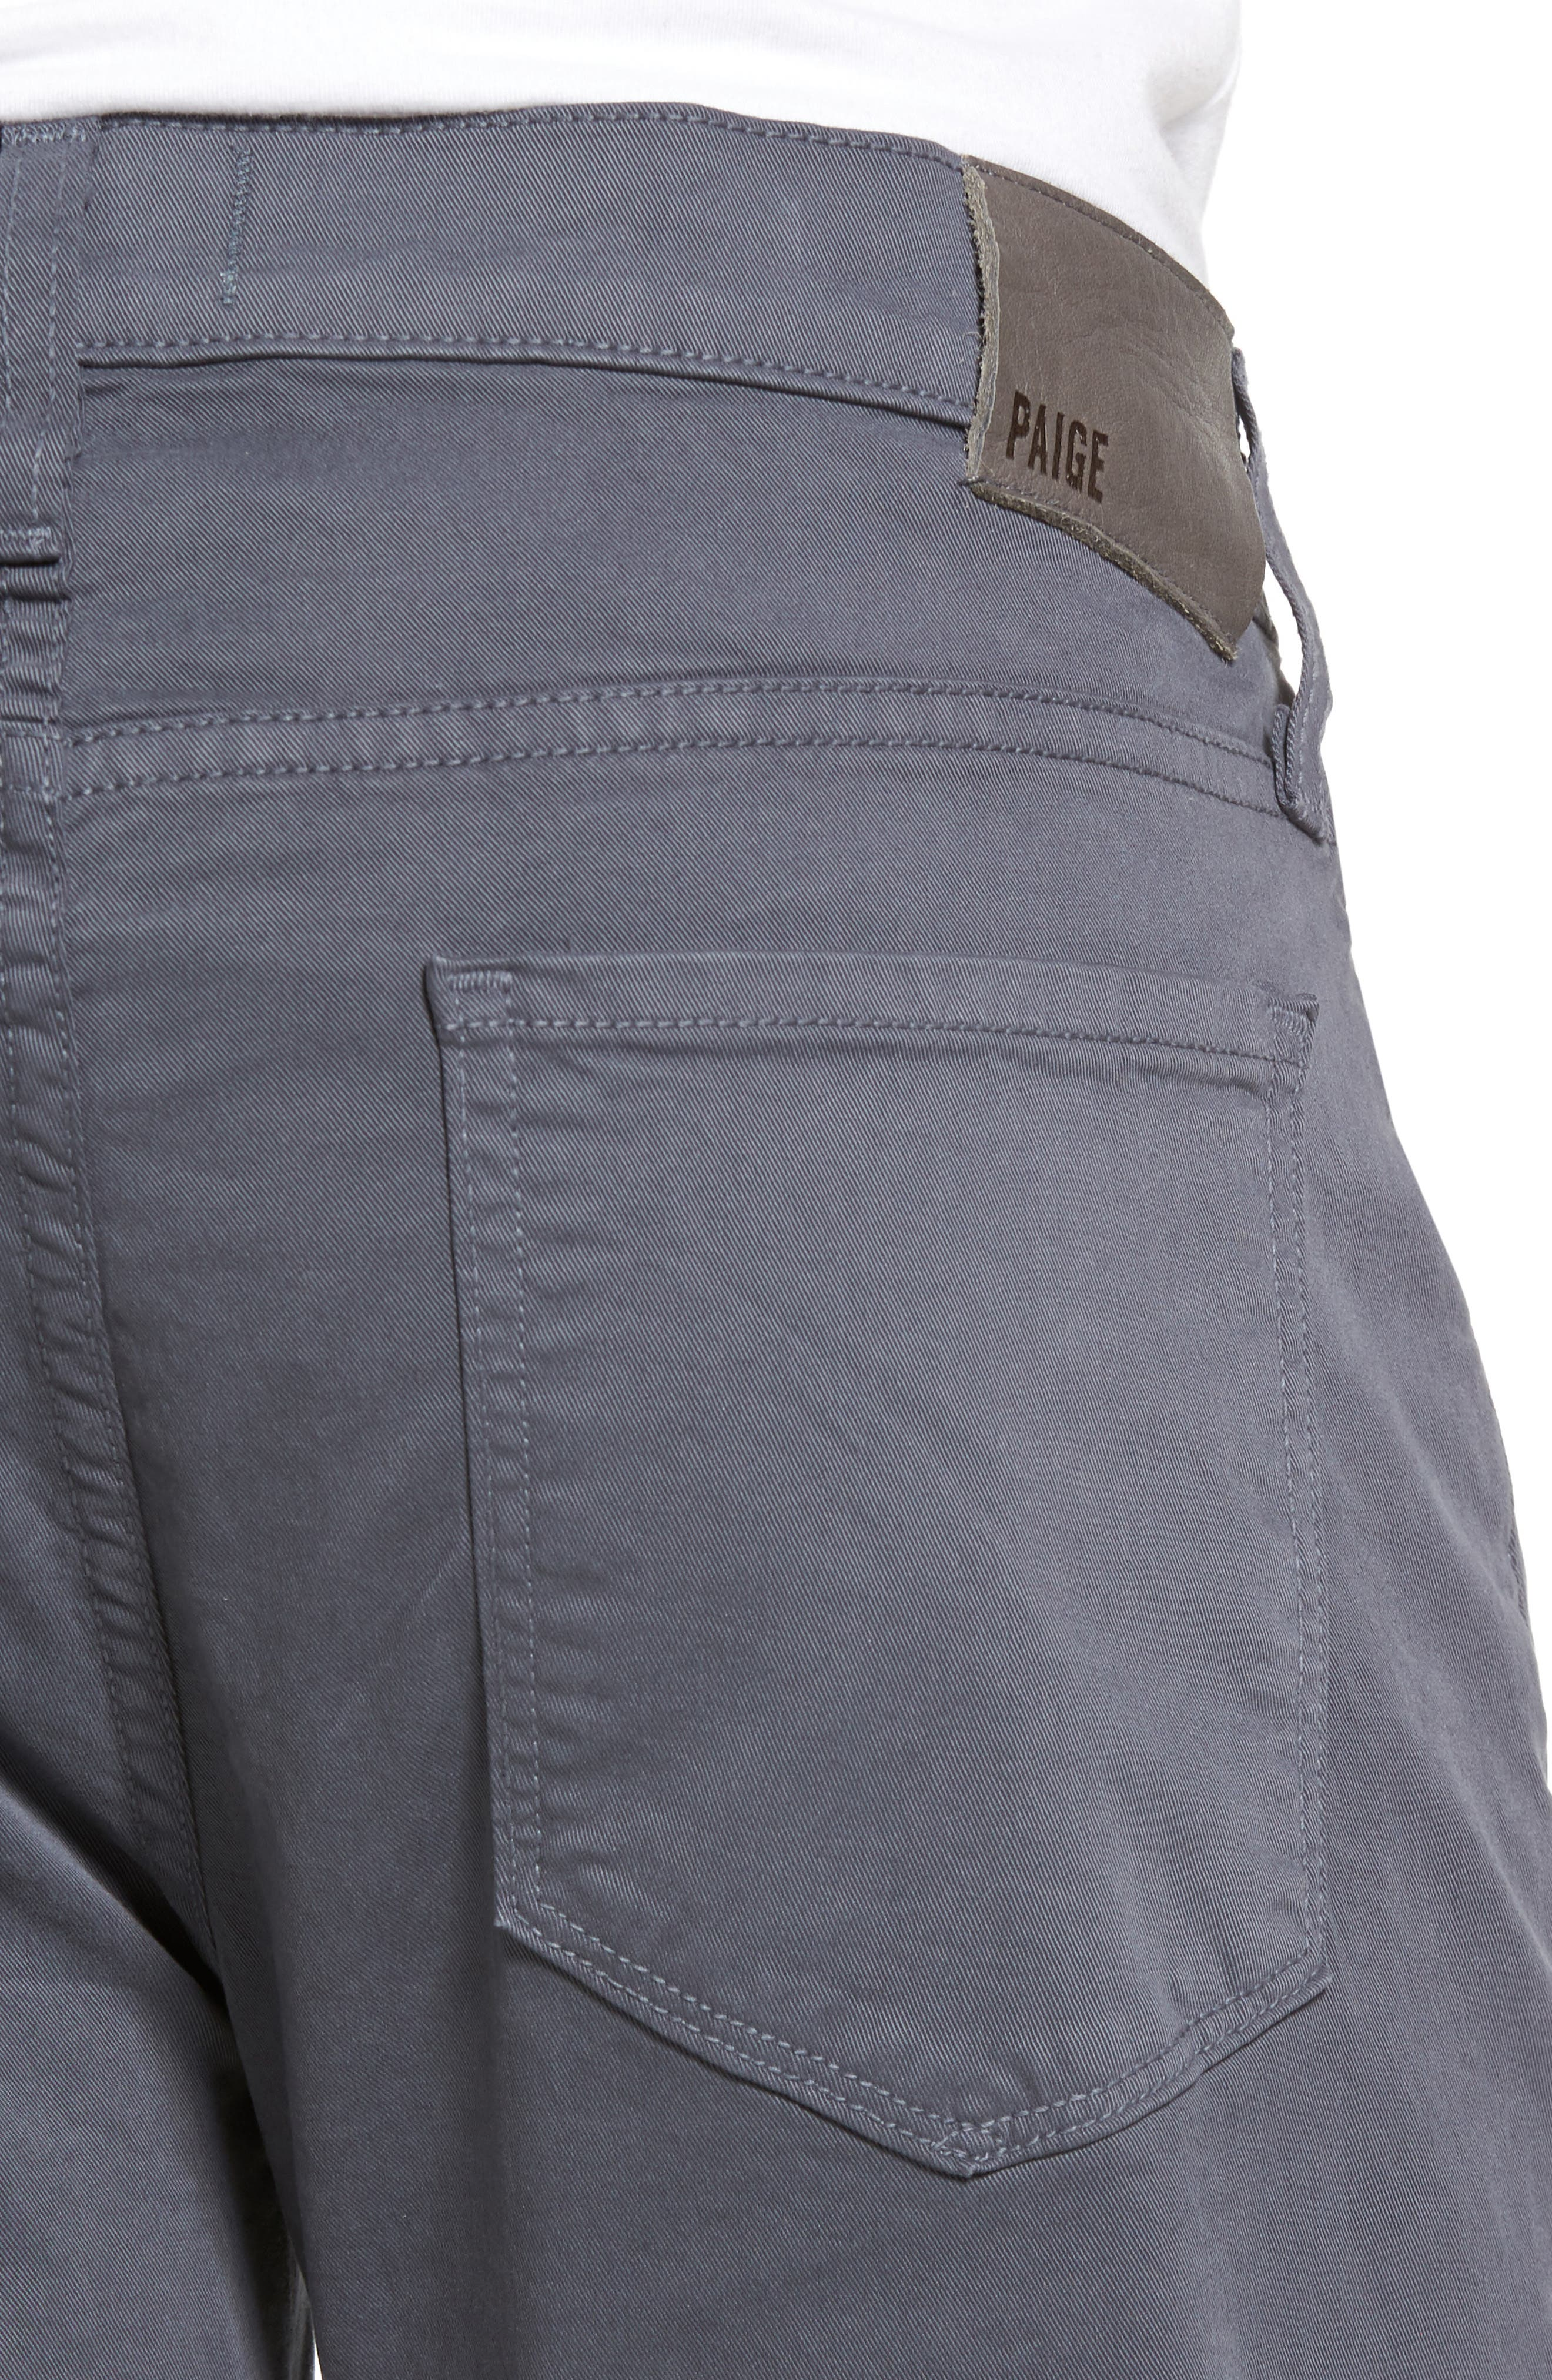 Federal Slim Straight Leg Twill Pants,                             Alternate thumbnail 4, color,                             Moon Shade